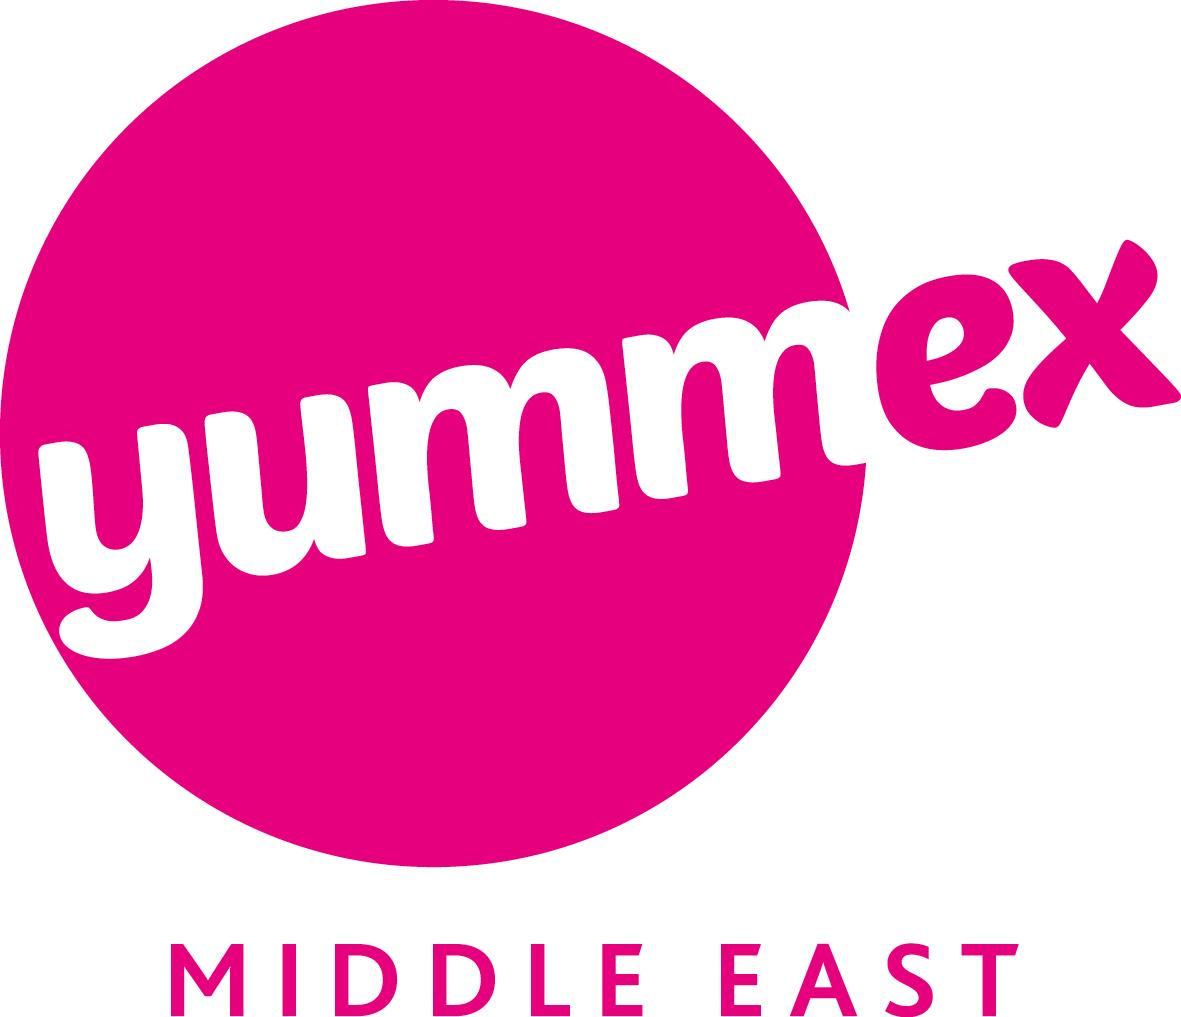 yummex Middle East 2017 continues its success story: around 80 percent of the exhibition space has already been booked